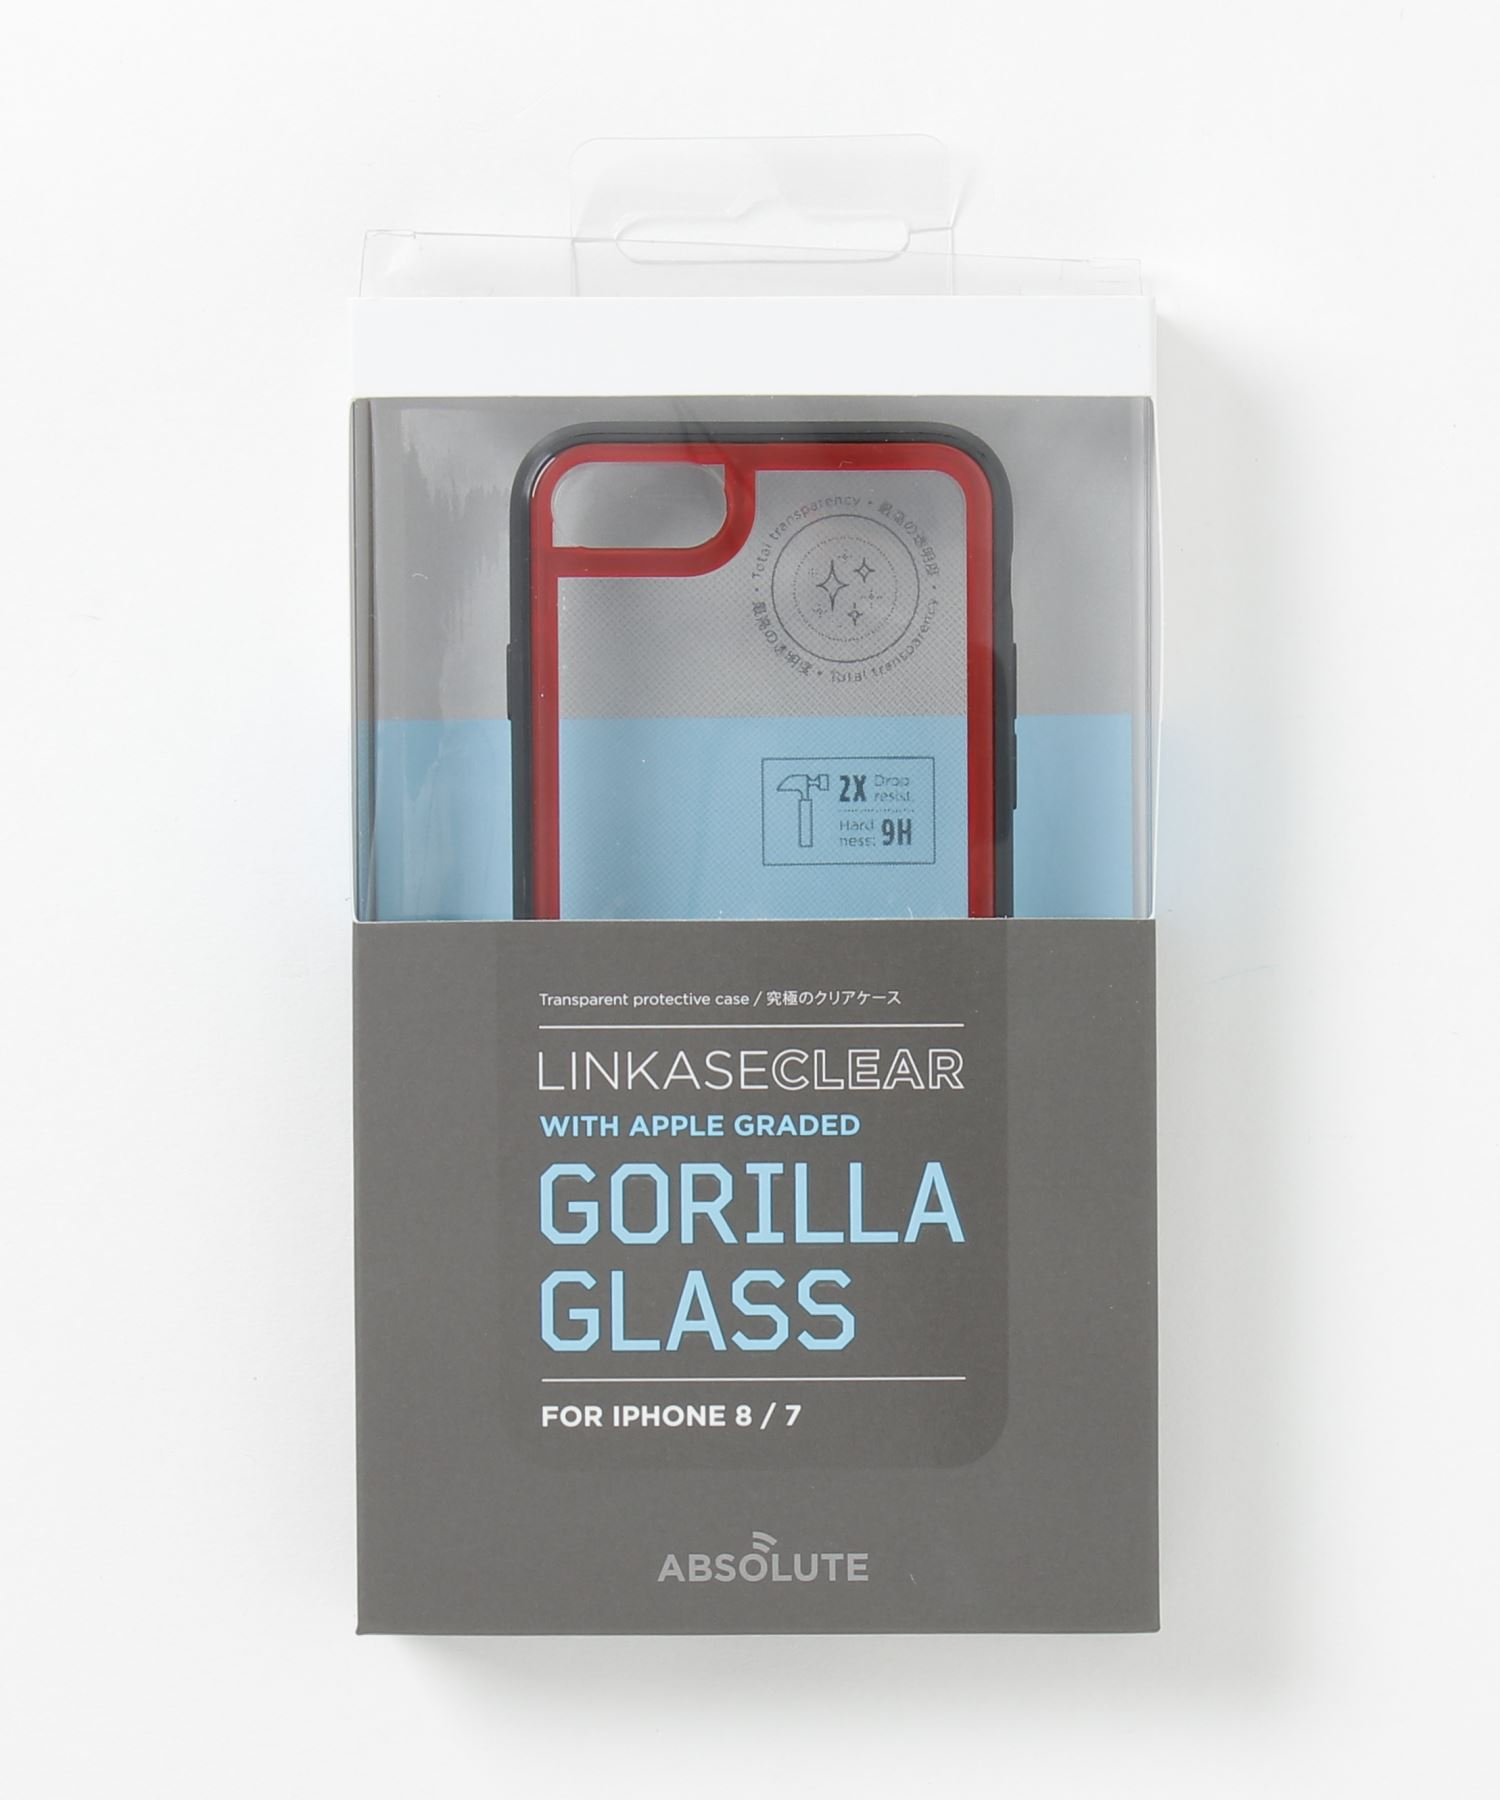 ABSOLUTE technology - LINKASE CLEAR / Gorilla Glass for iPhone 8/7